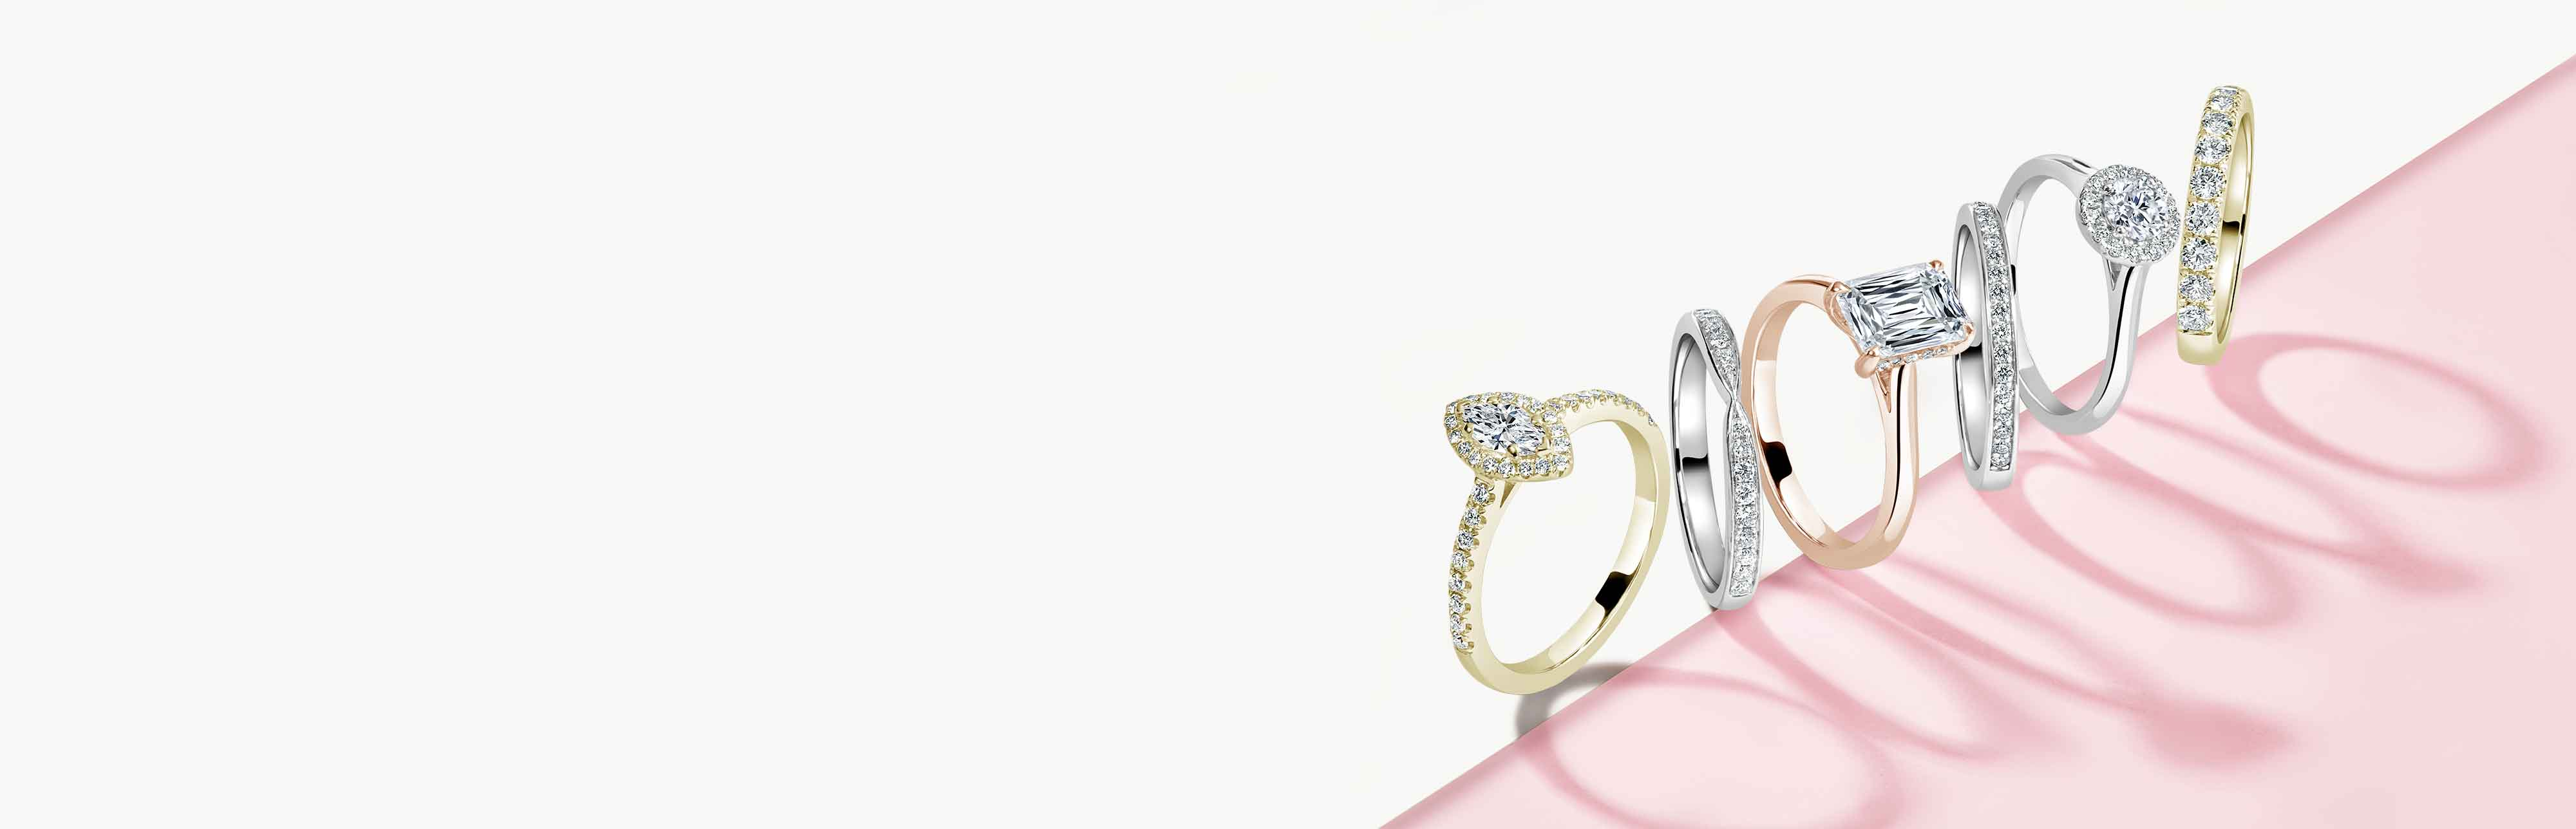 Radiant Cut Halo Engagement Rings - Steven Stone